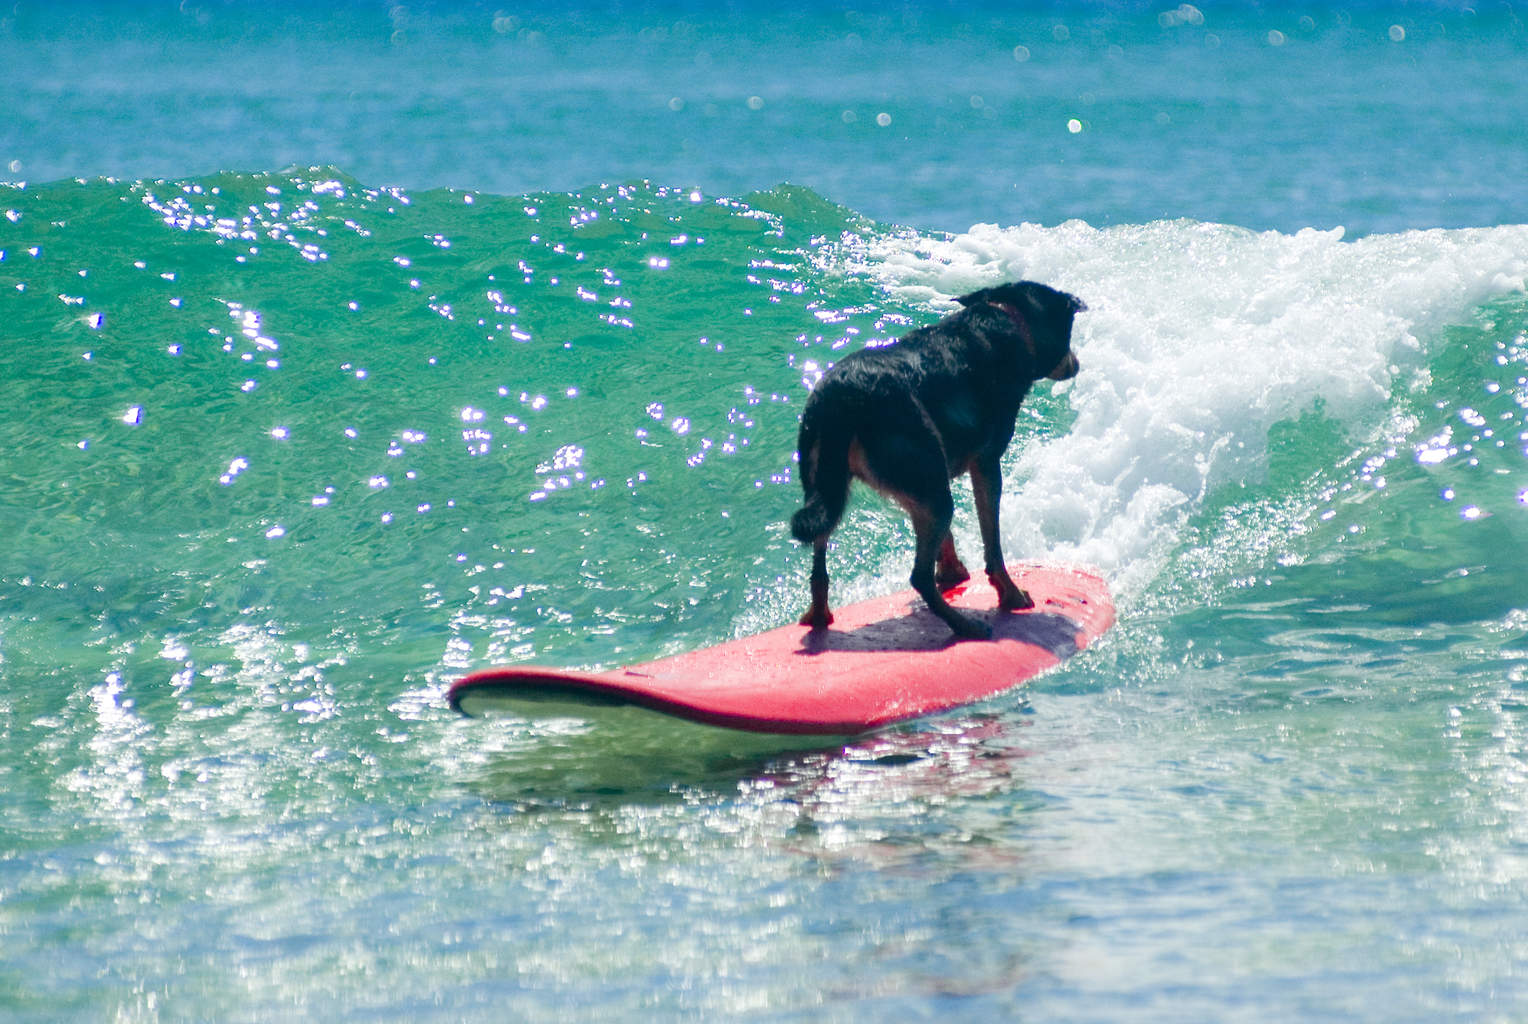 They even managed to teach a dog to surf!